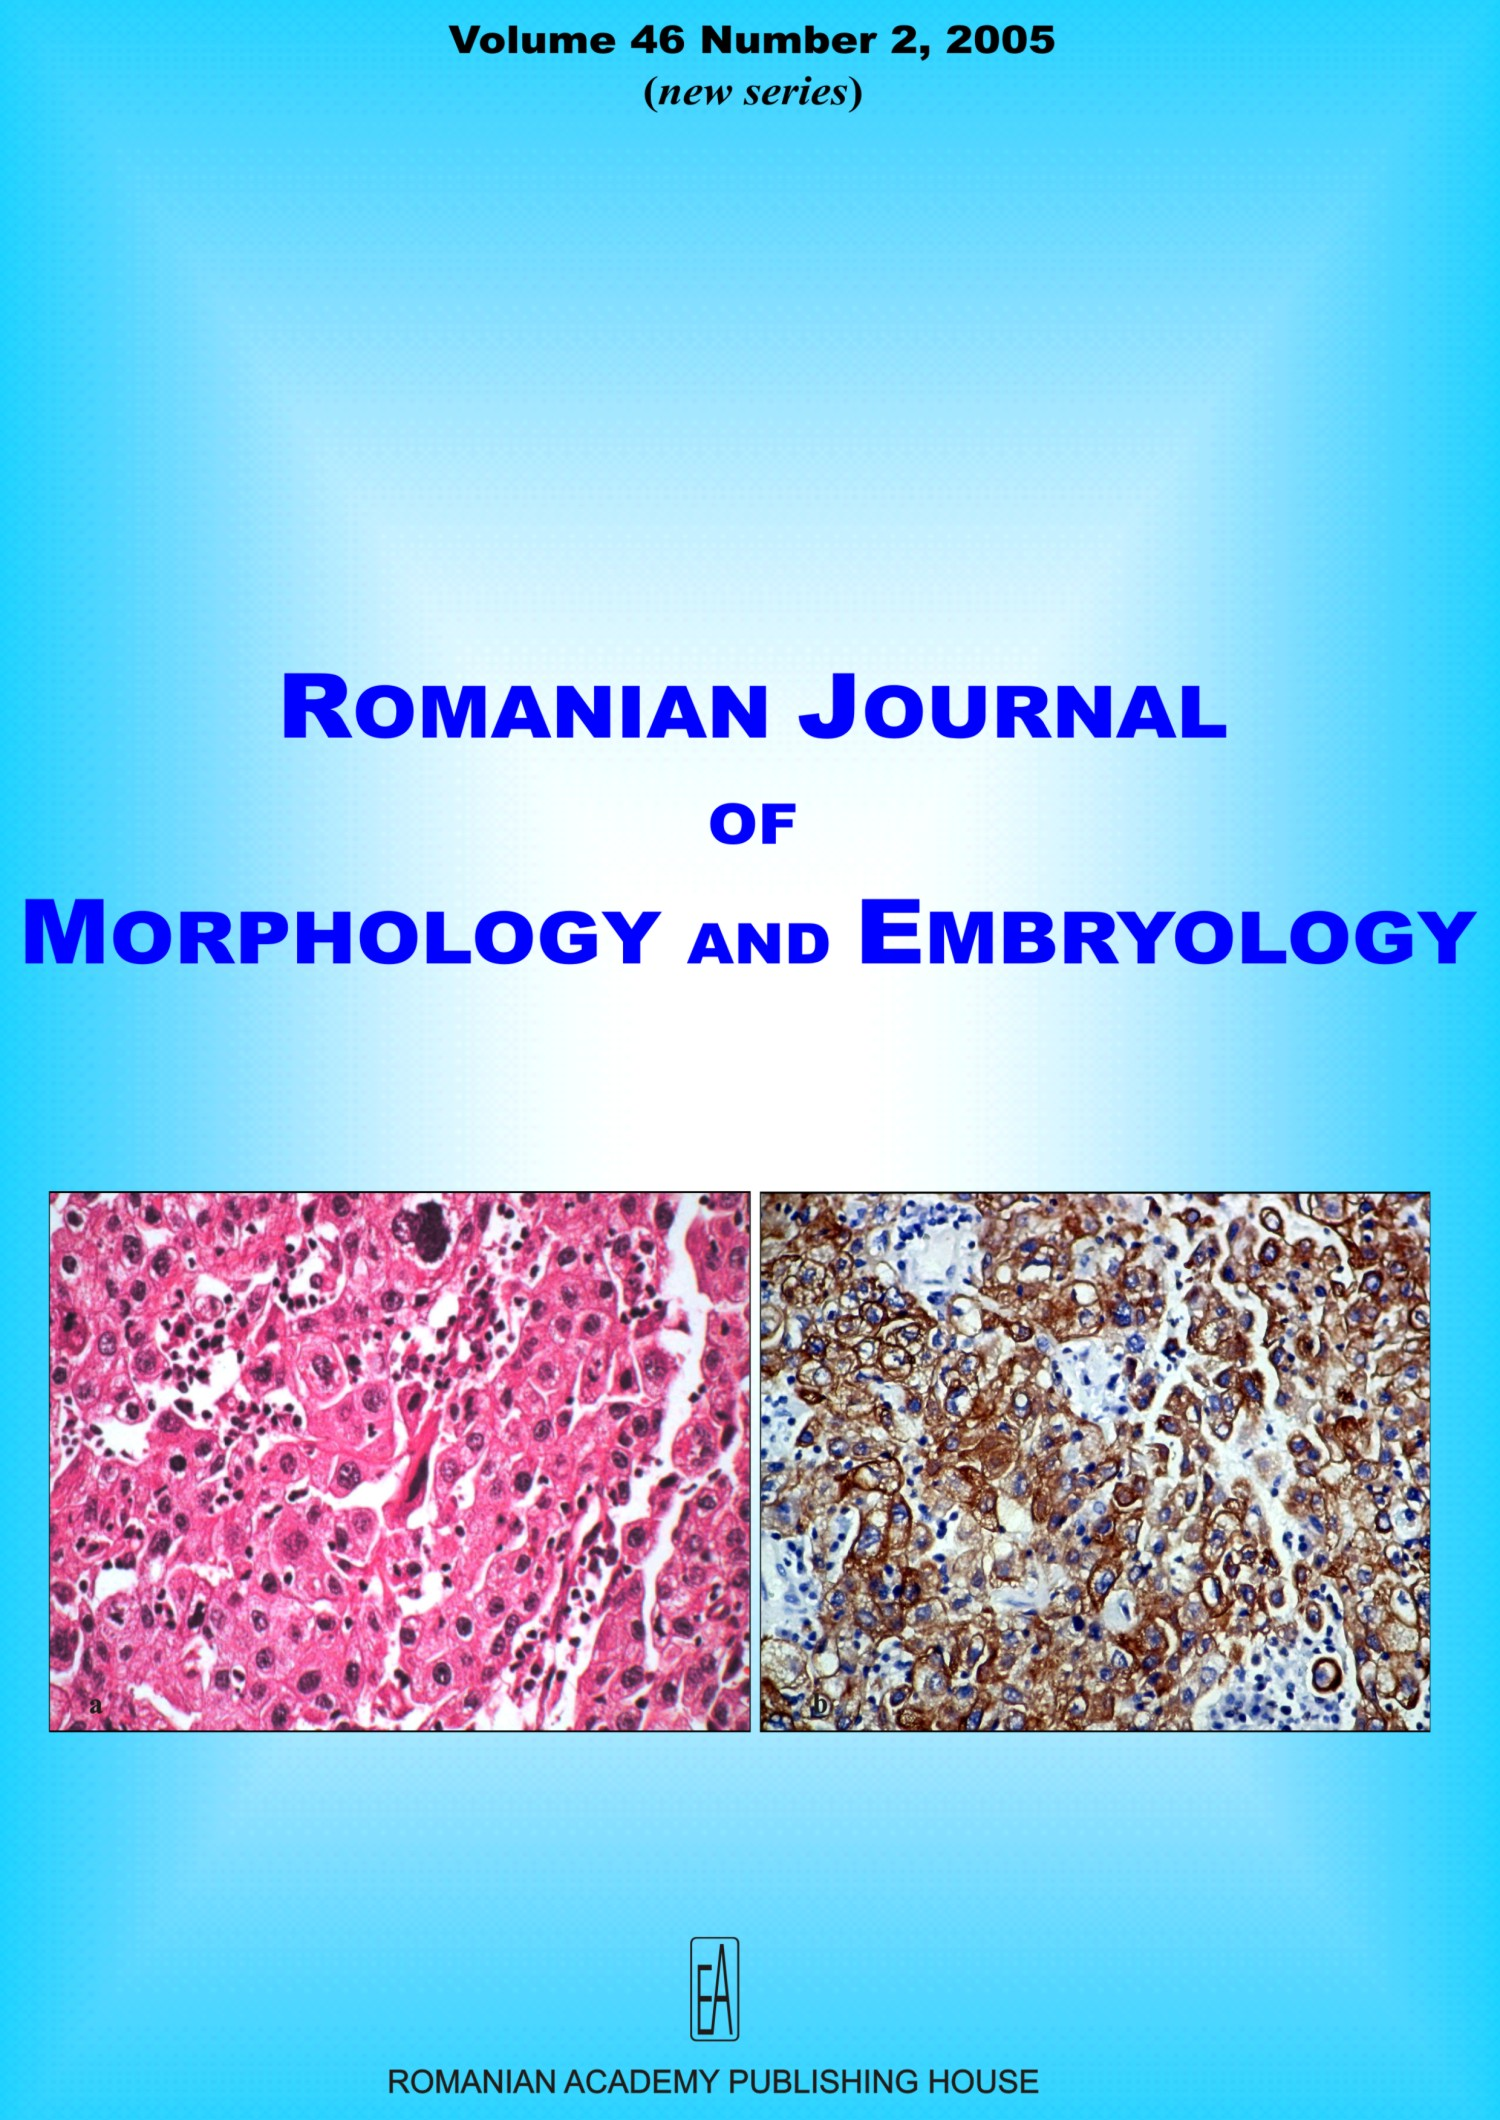 Romanian Journal of Morphology and Embryology, vol. 46 no. 2, 2005